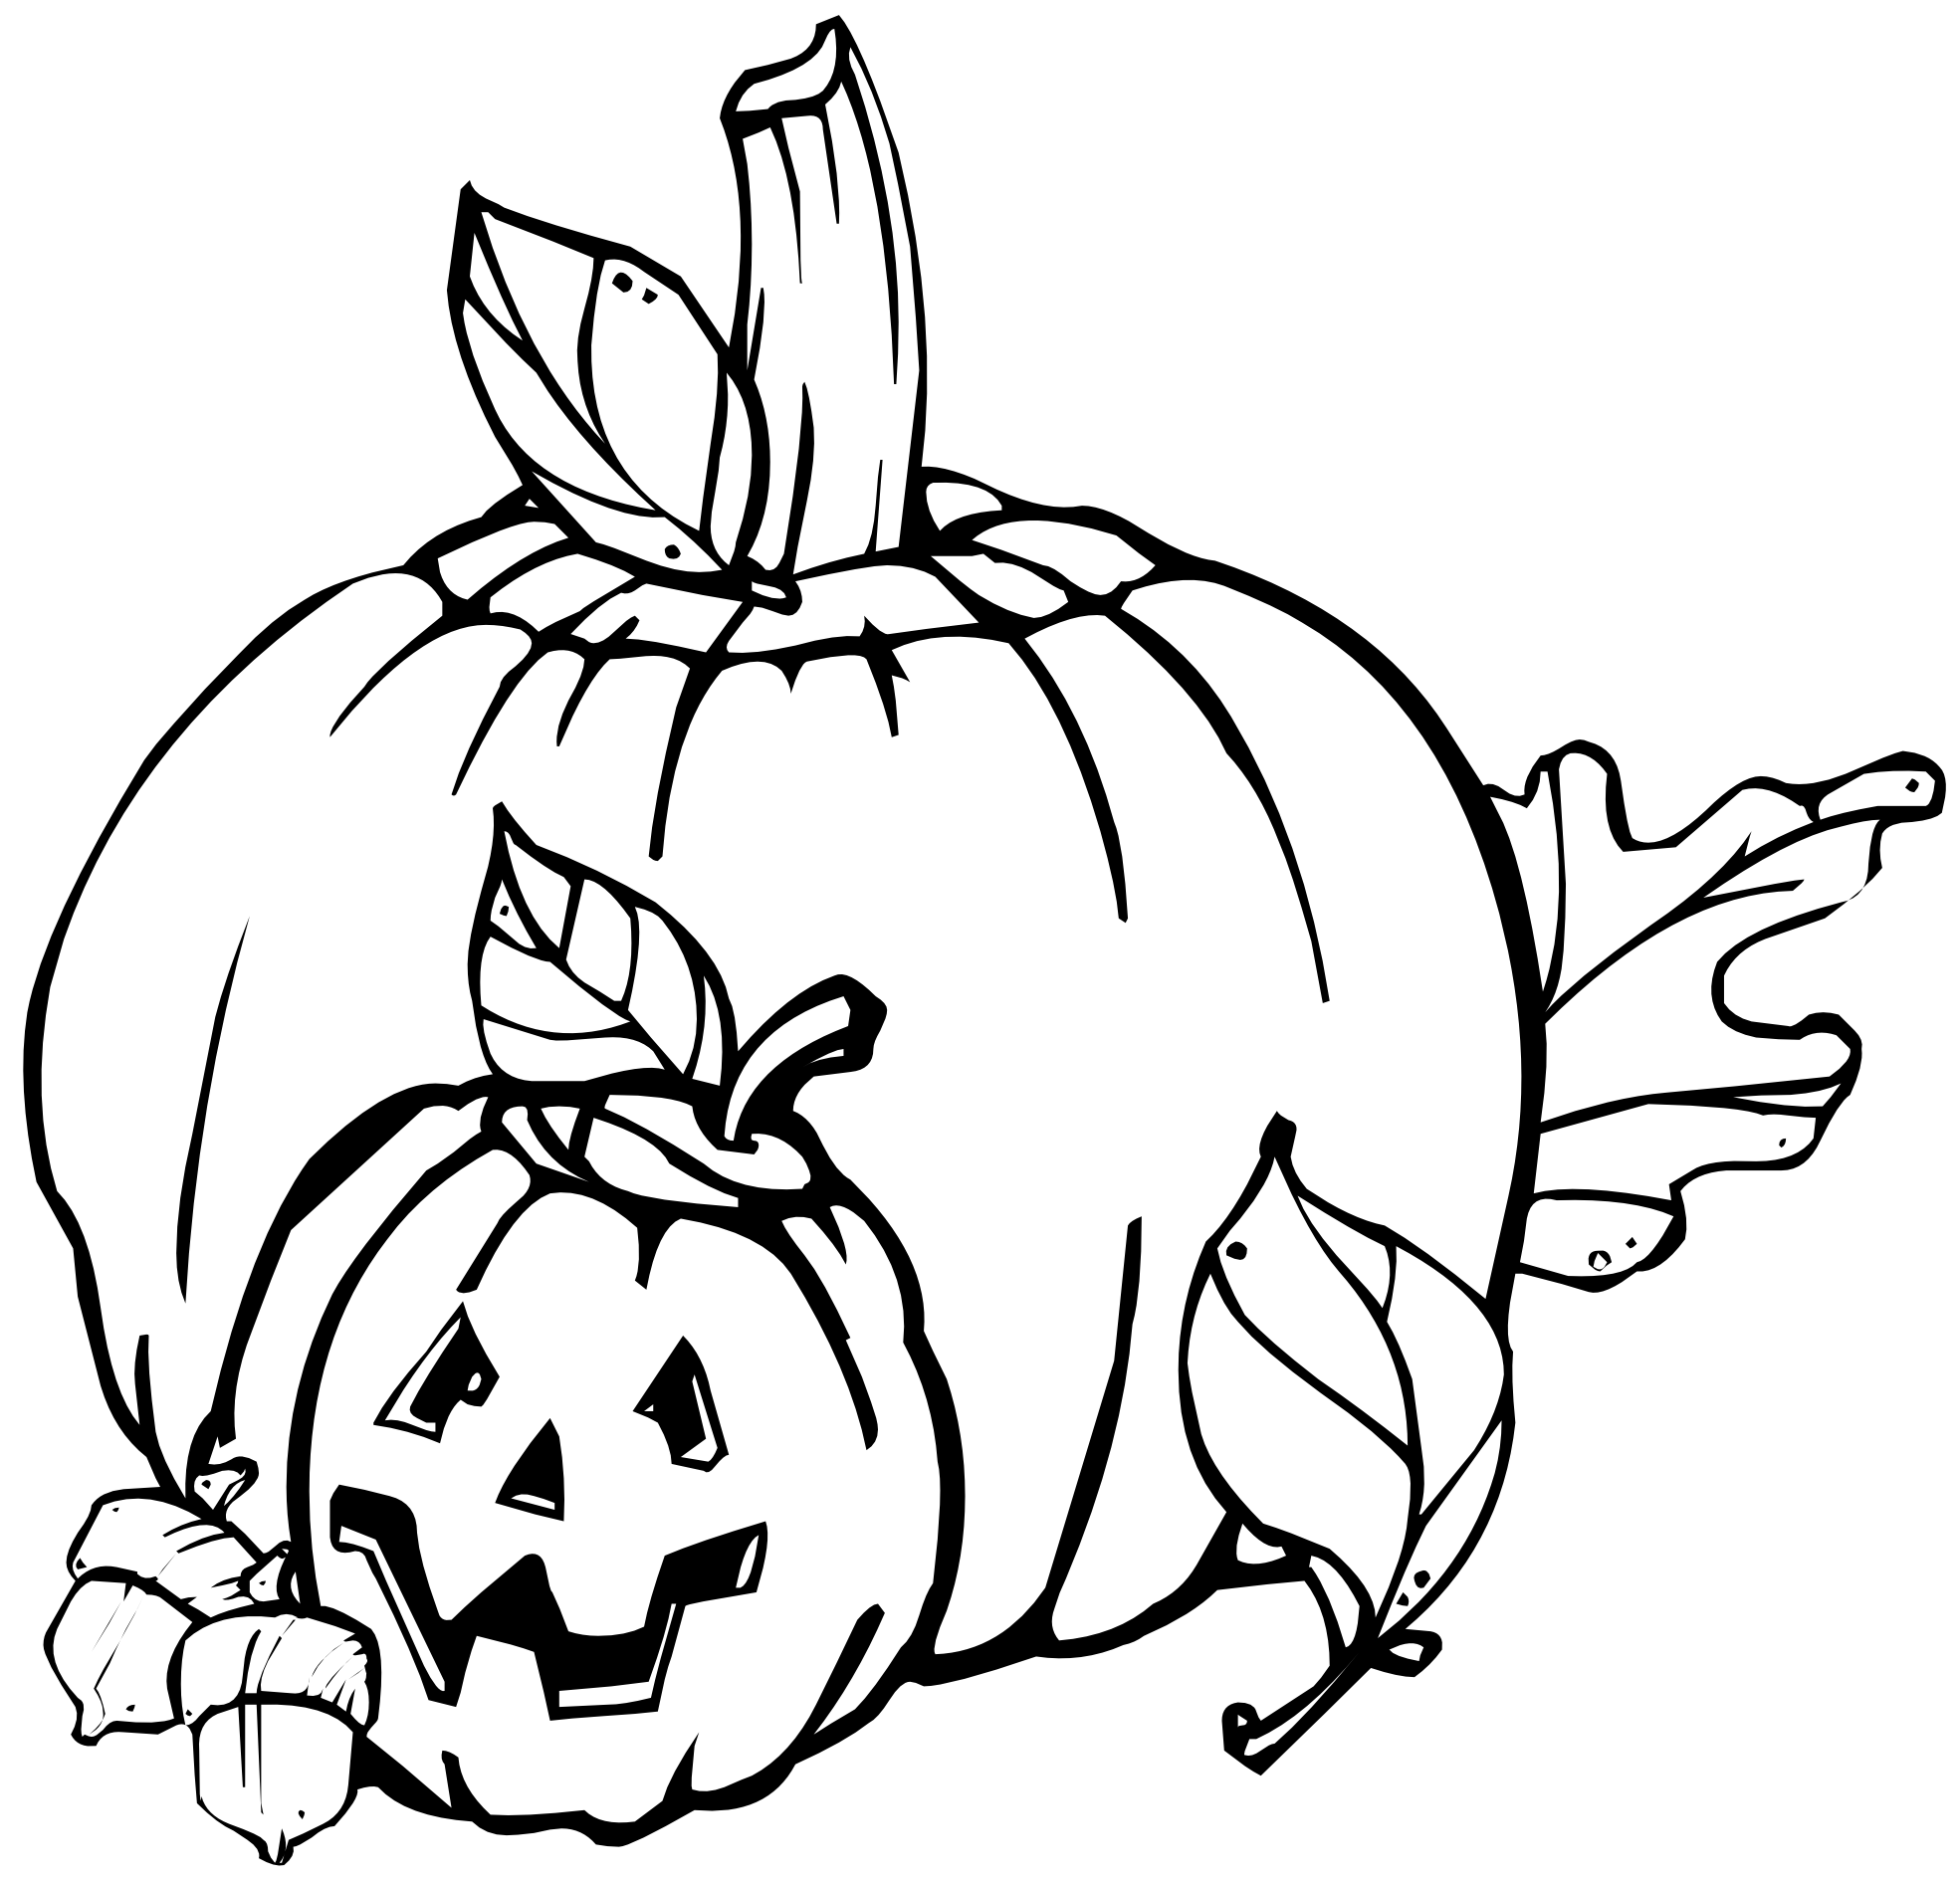 Pumpkin  black and white images for black and white pumpkin outline clipart